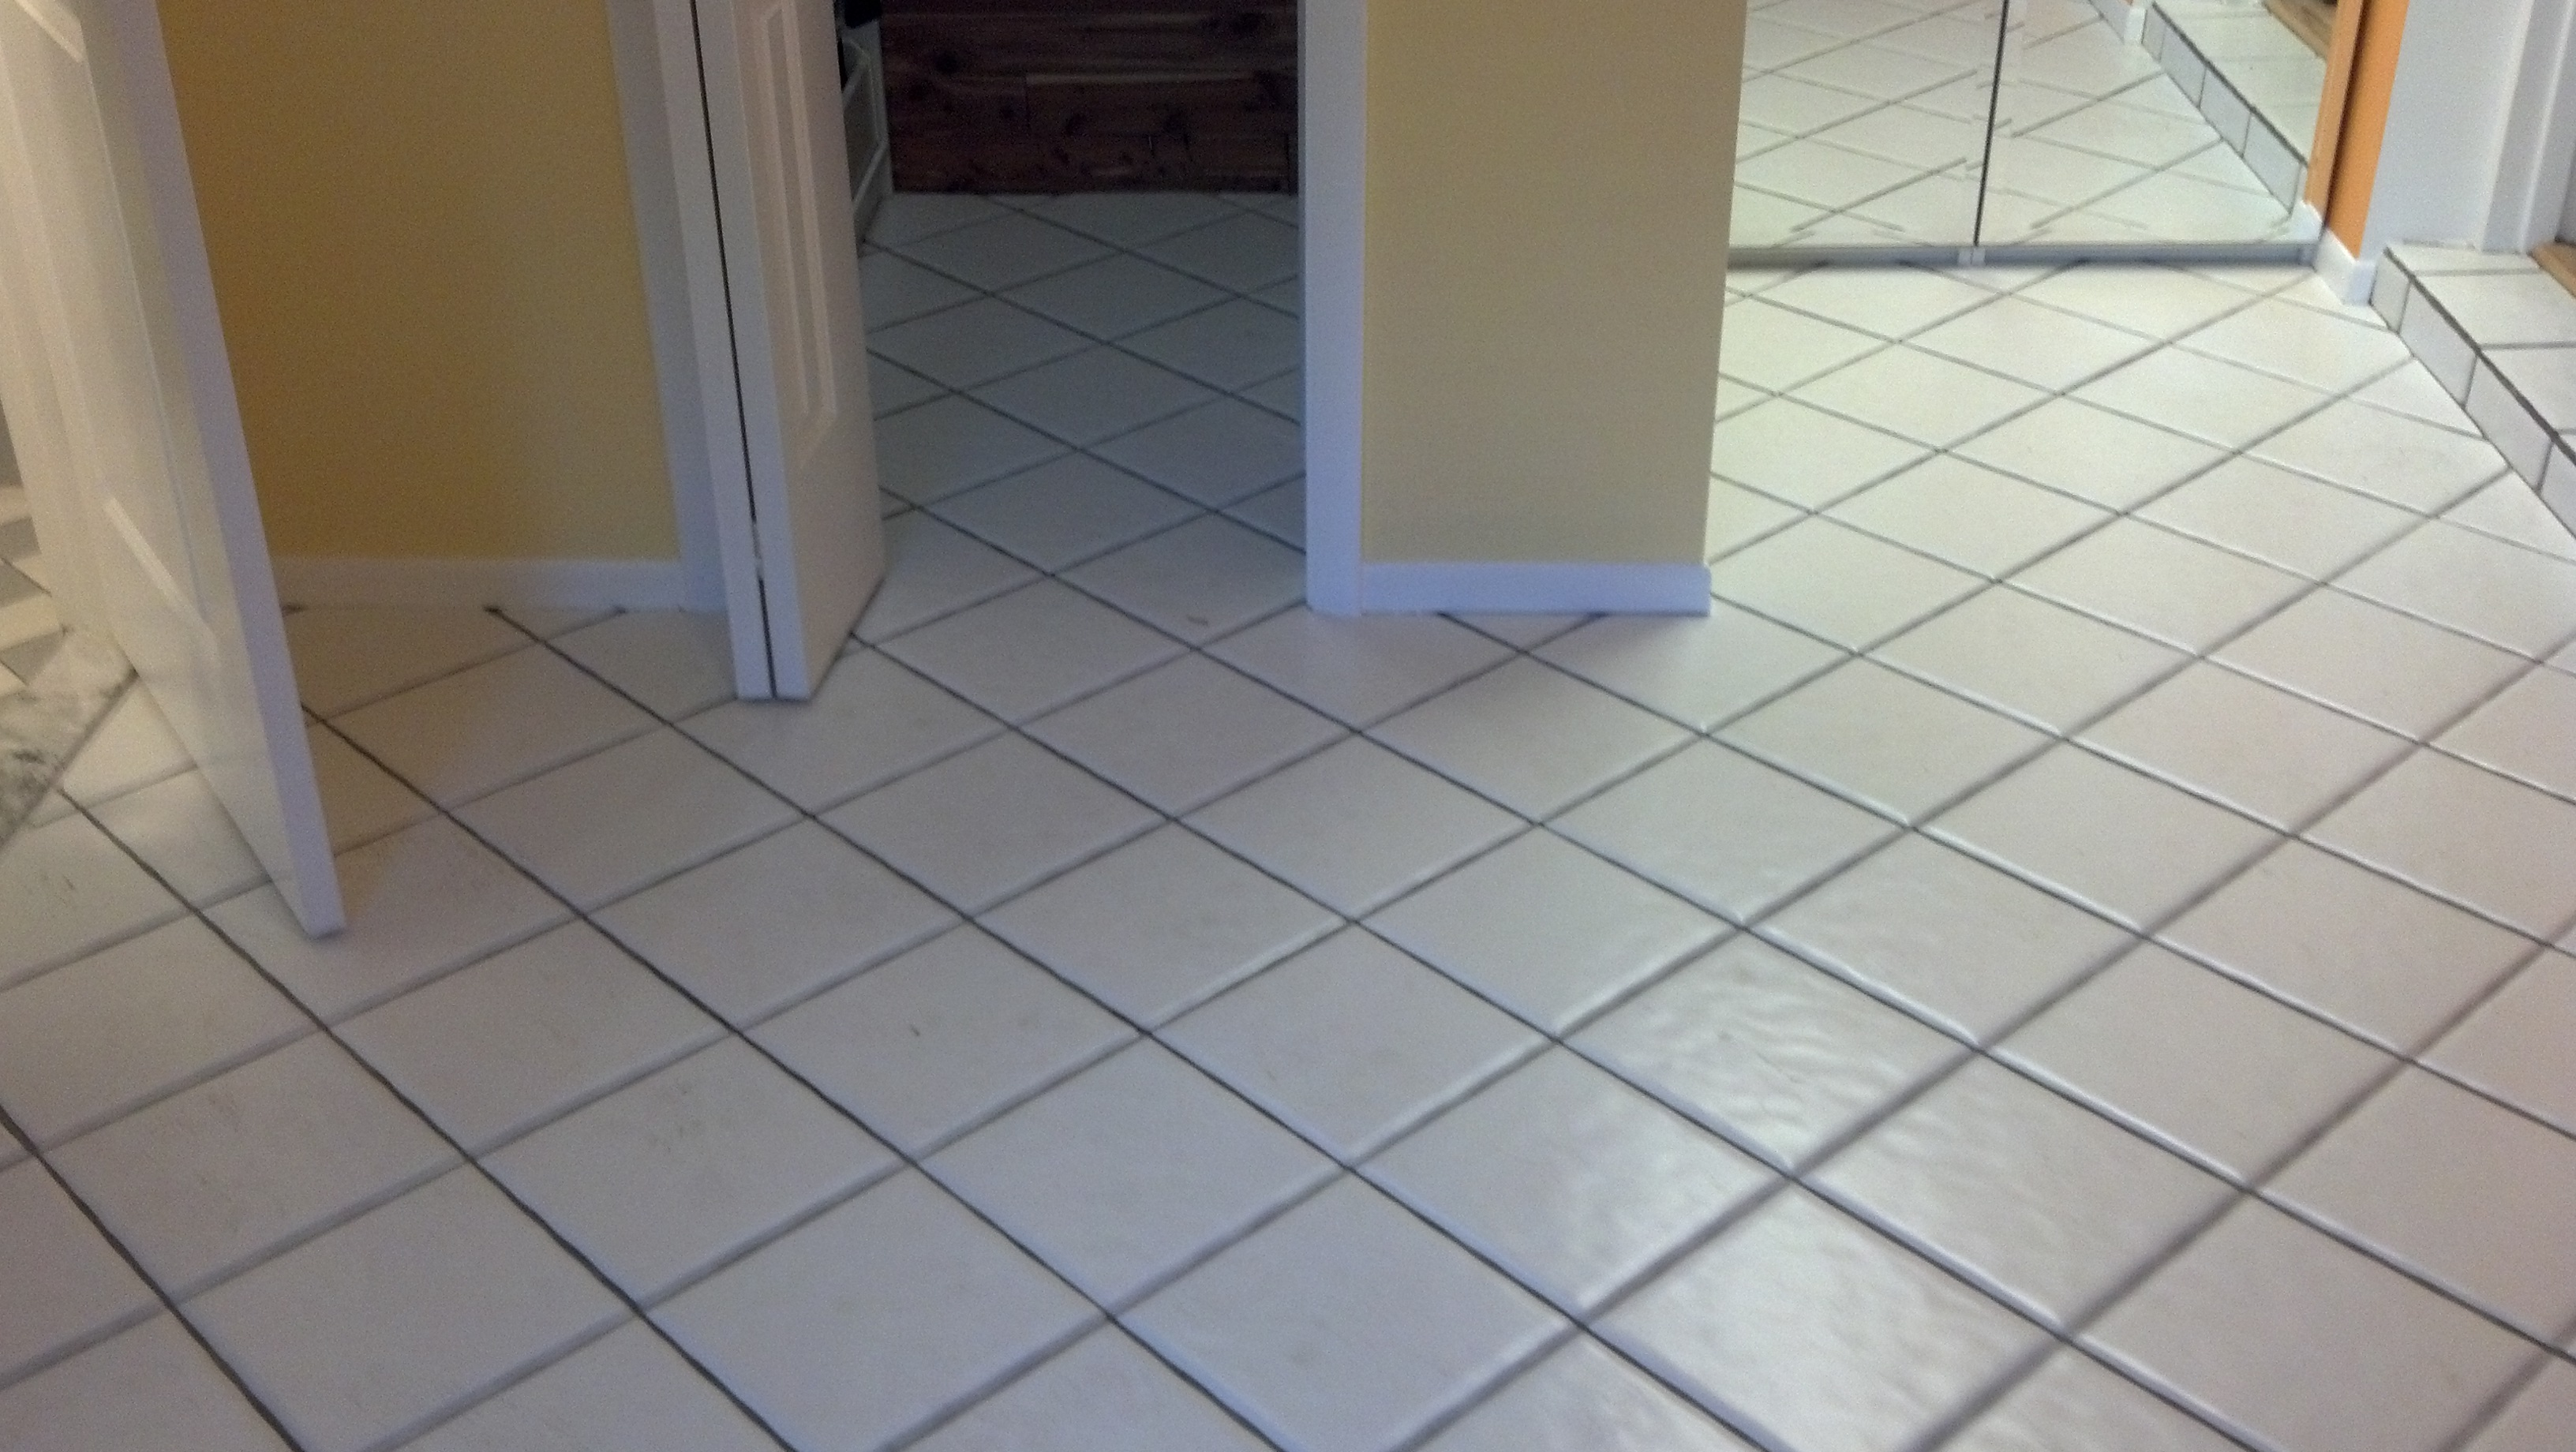 Our Ceramic Tile And Grout Cleaning Gets Grout As Clean As